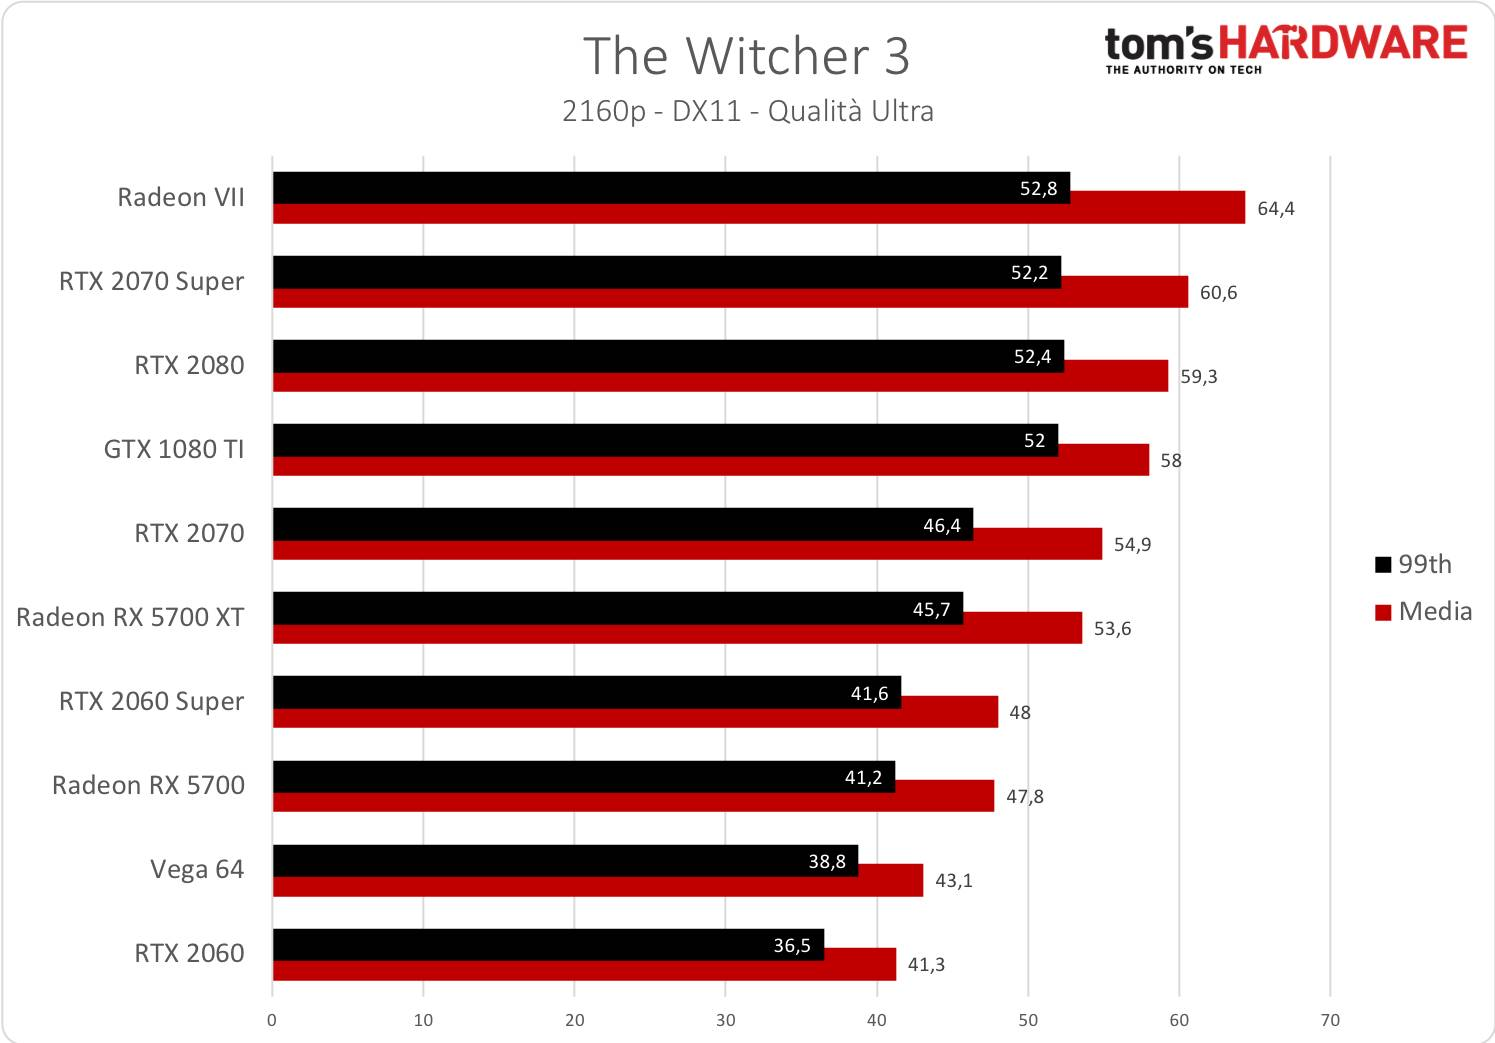 The Witcher 3 - 2160p